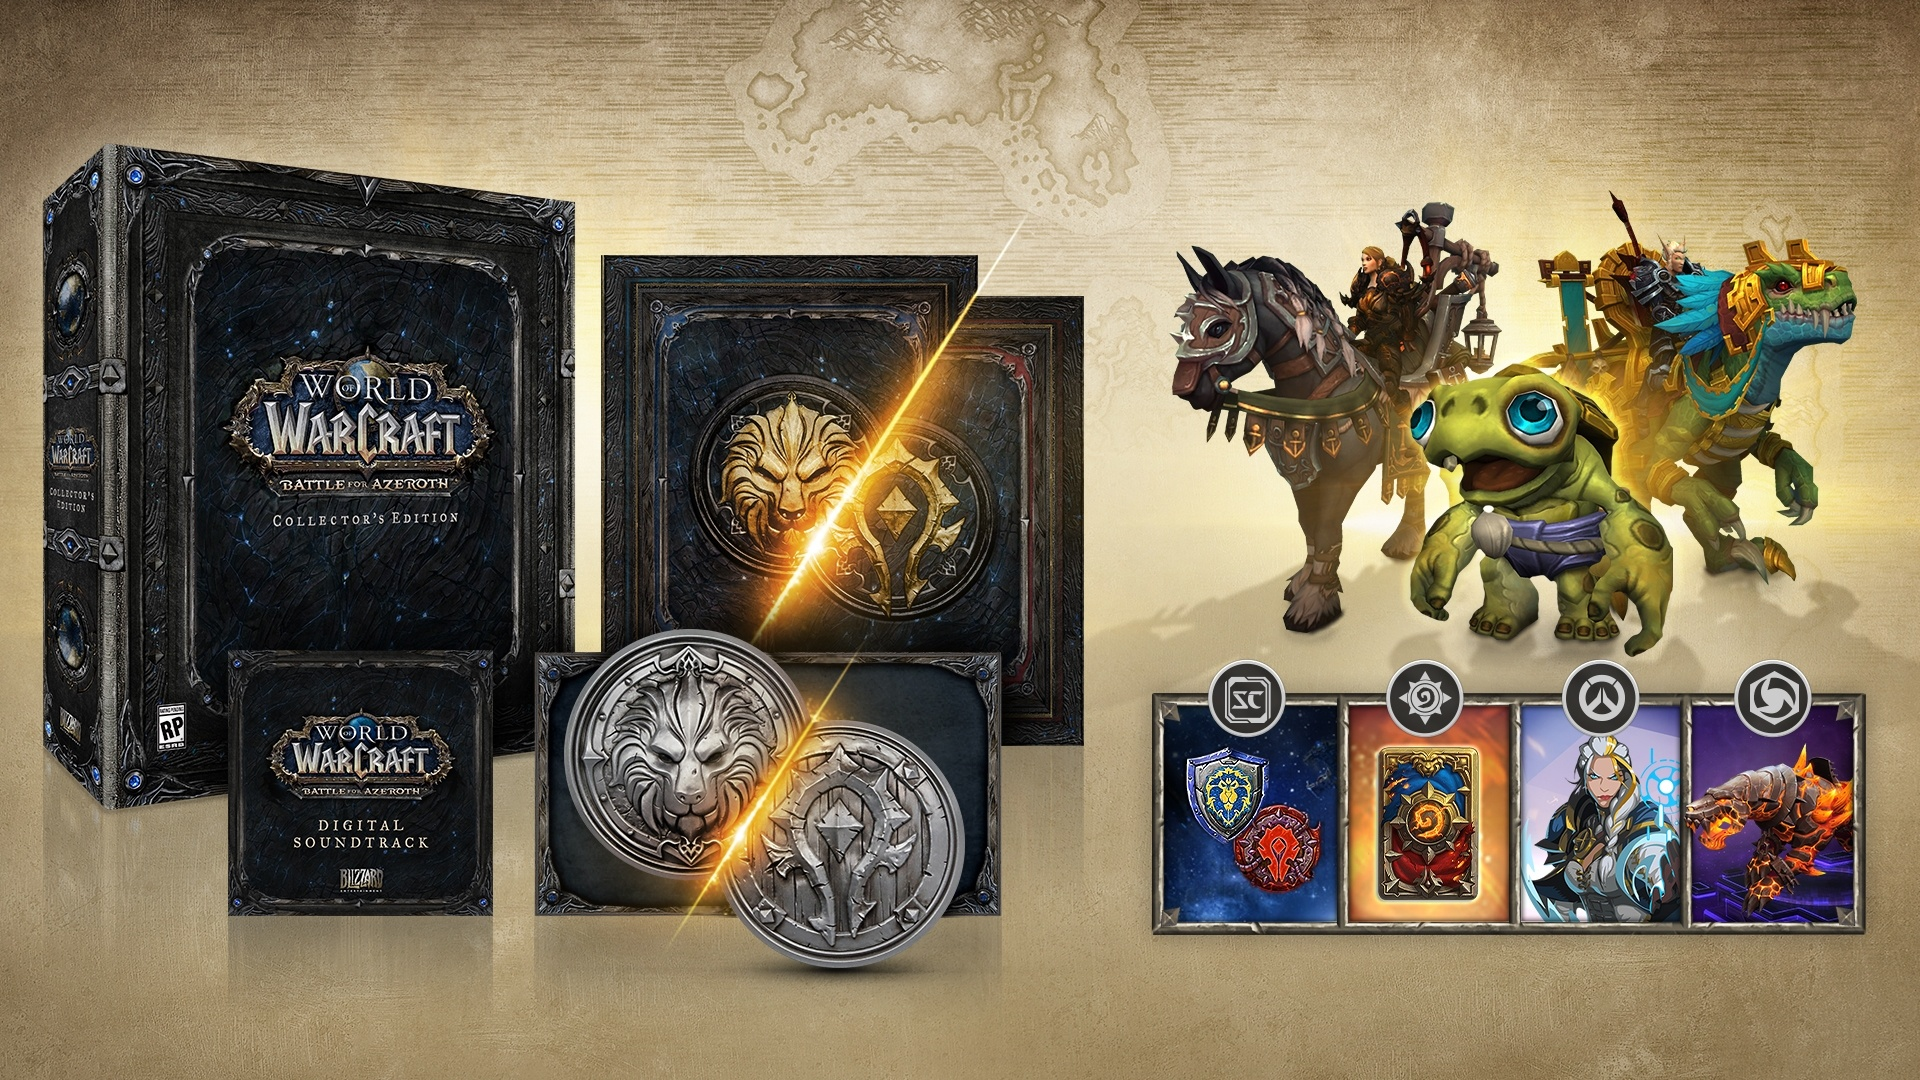 battle for azeroth collector s edition rewards and faq wowhead news